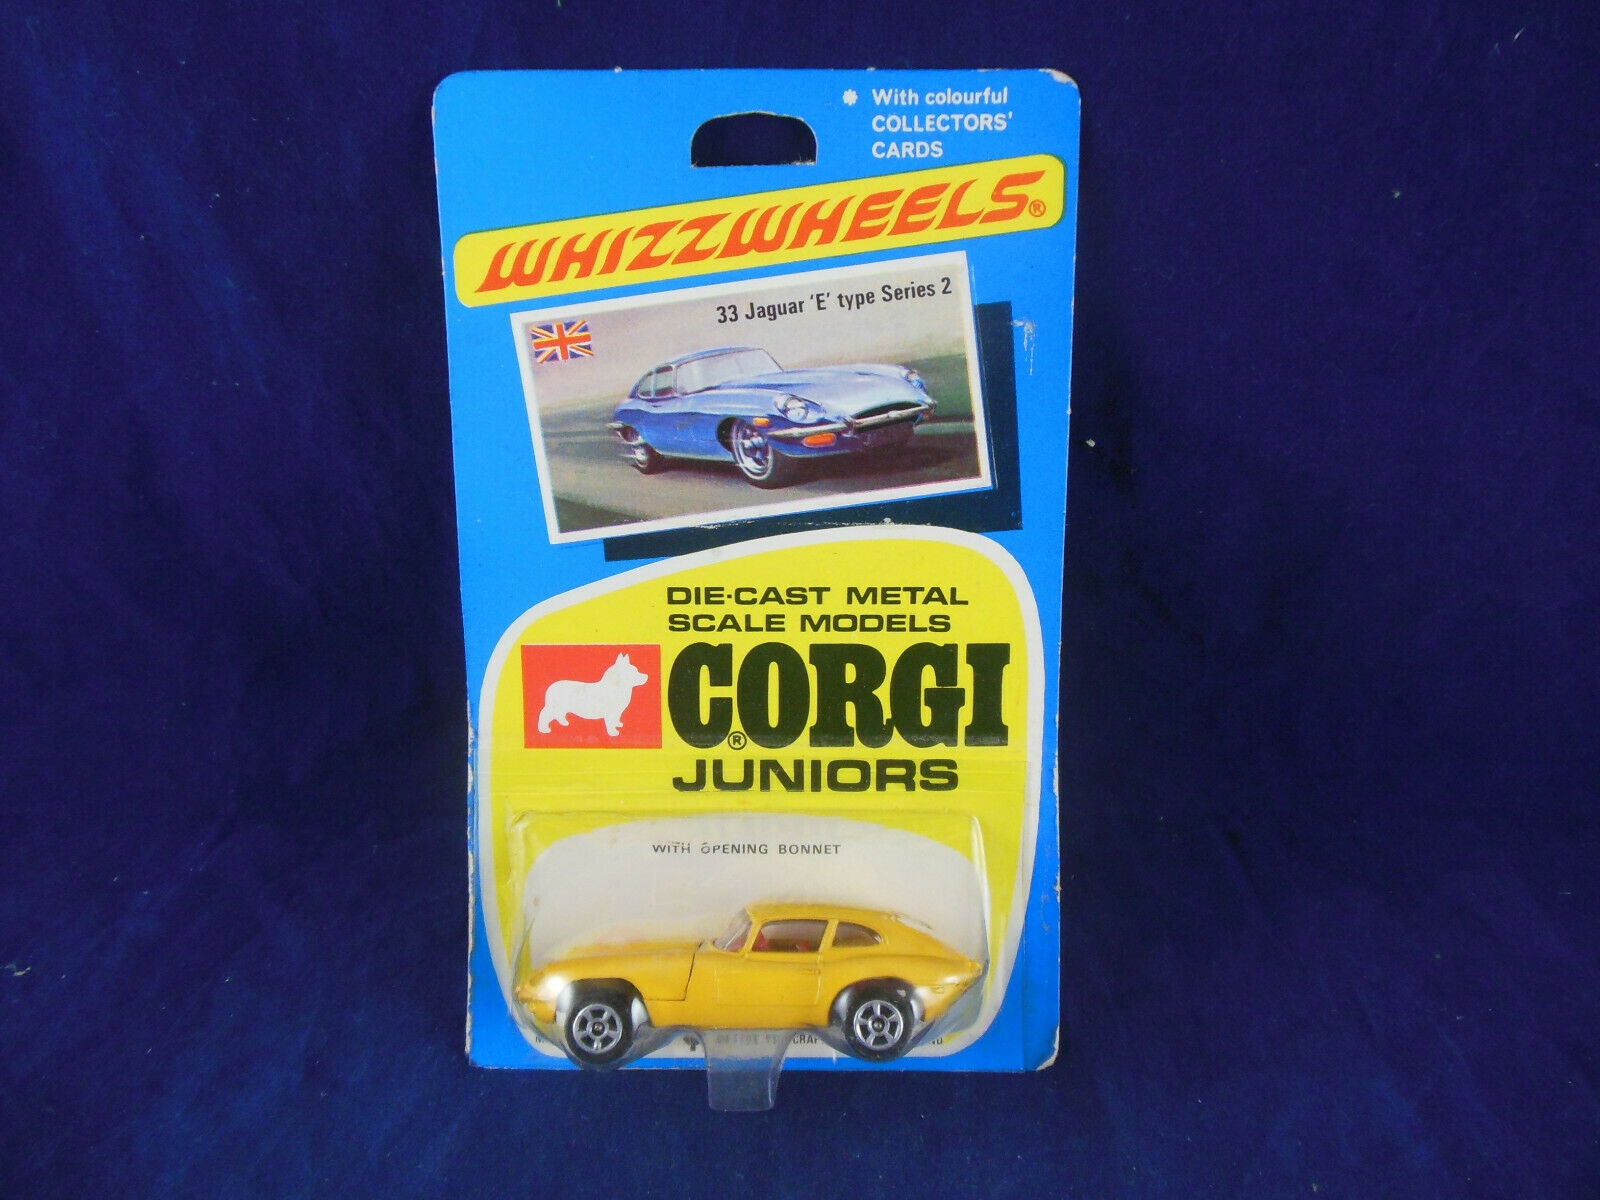 Raro 1970 Corgi Juniors no.33 Jaguar 'e' tipo serie 2 COUPE giallo Whizzwheels